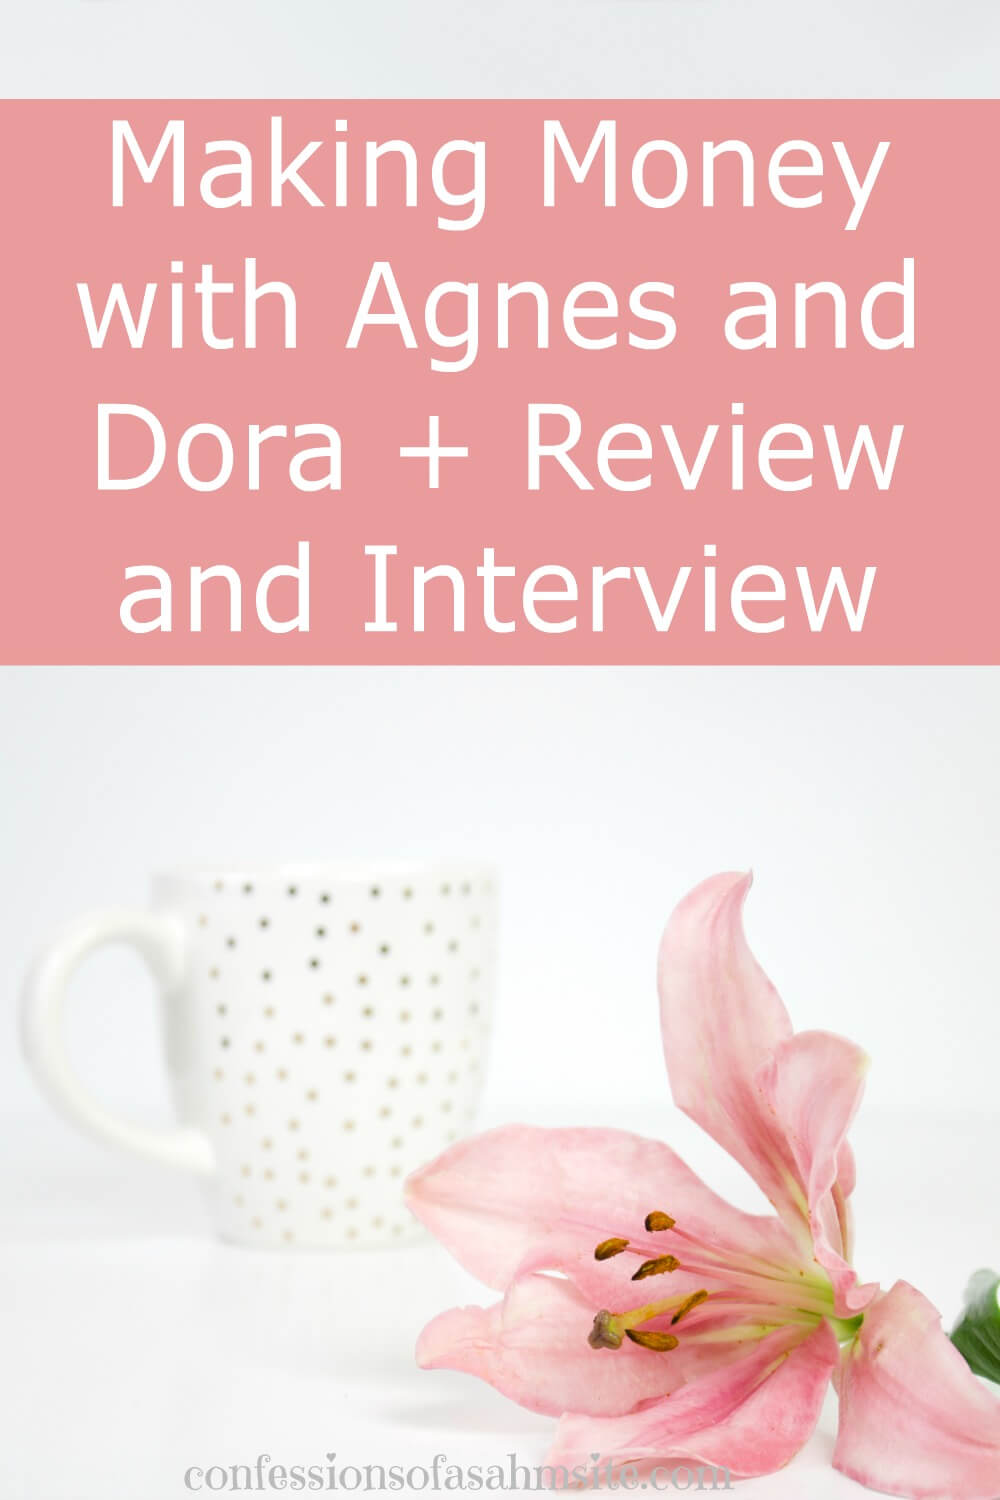 Feature Friday: Making Money with Agnes and Dora + Review and Interview. If you wish to stay at home and enjoy shopping for clothes, then this work at home opportunity is just for you. Read how this mom is able to make income with Agnes and Dora.